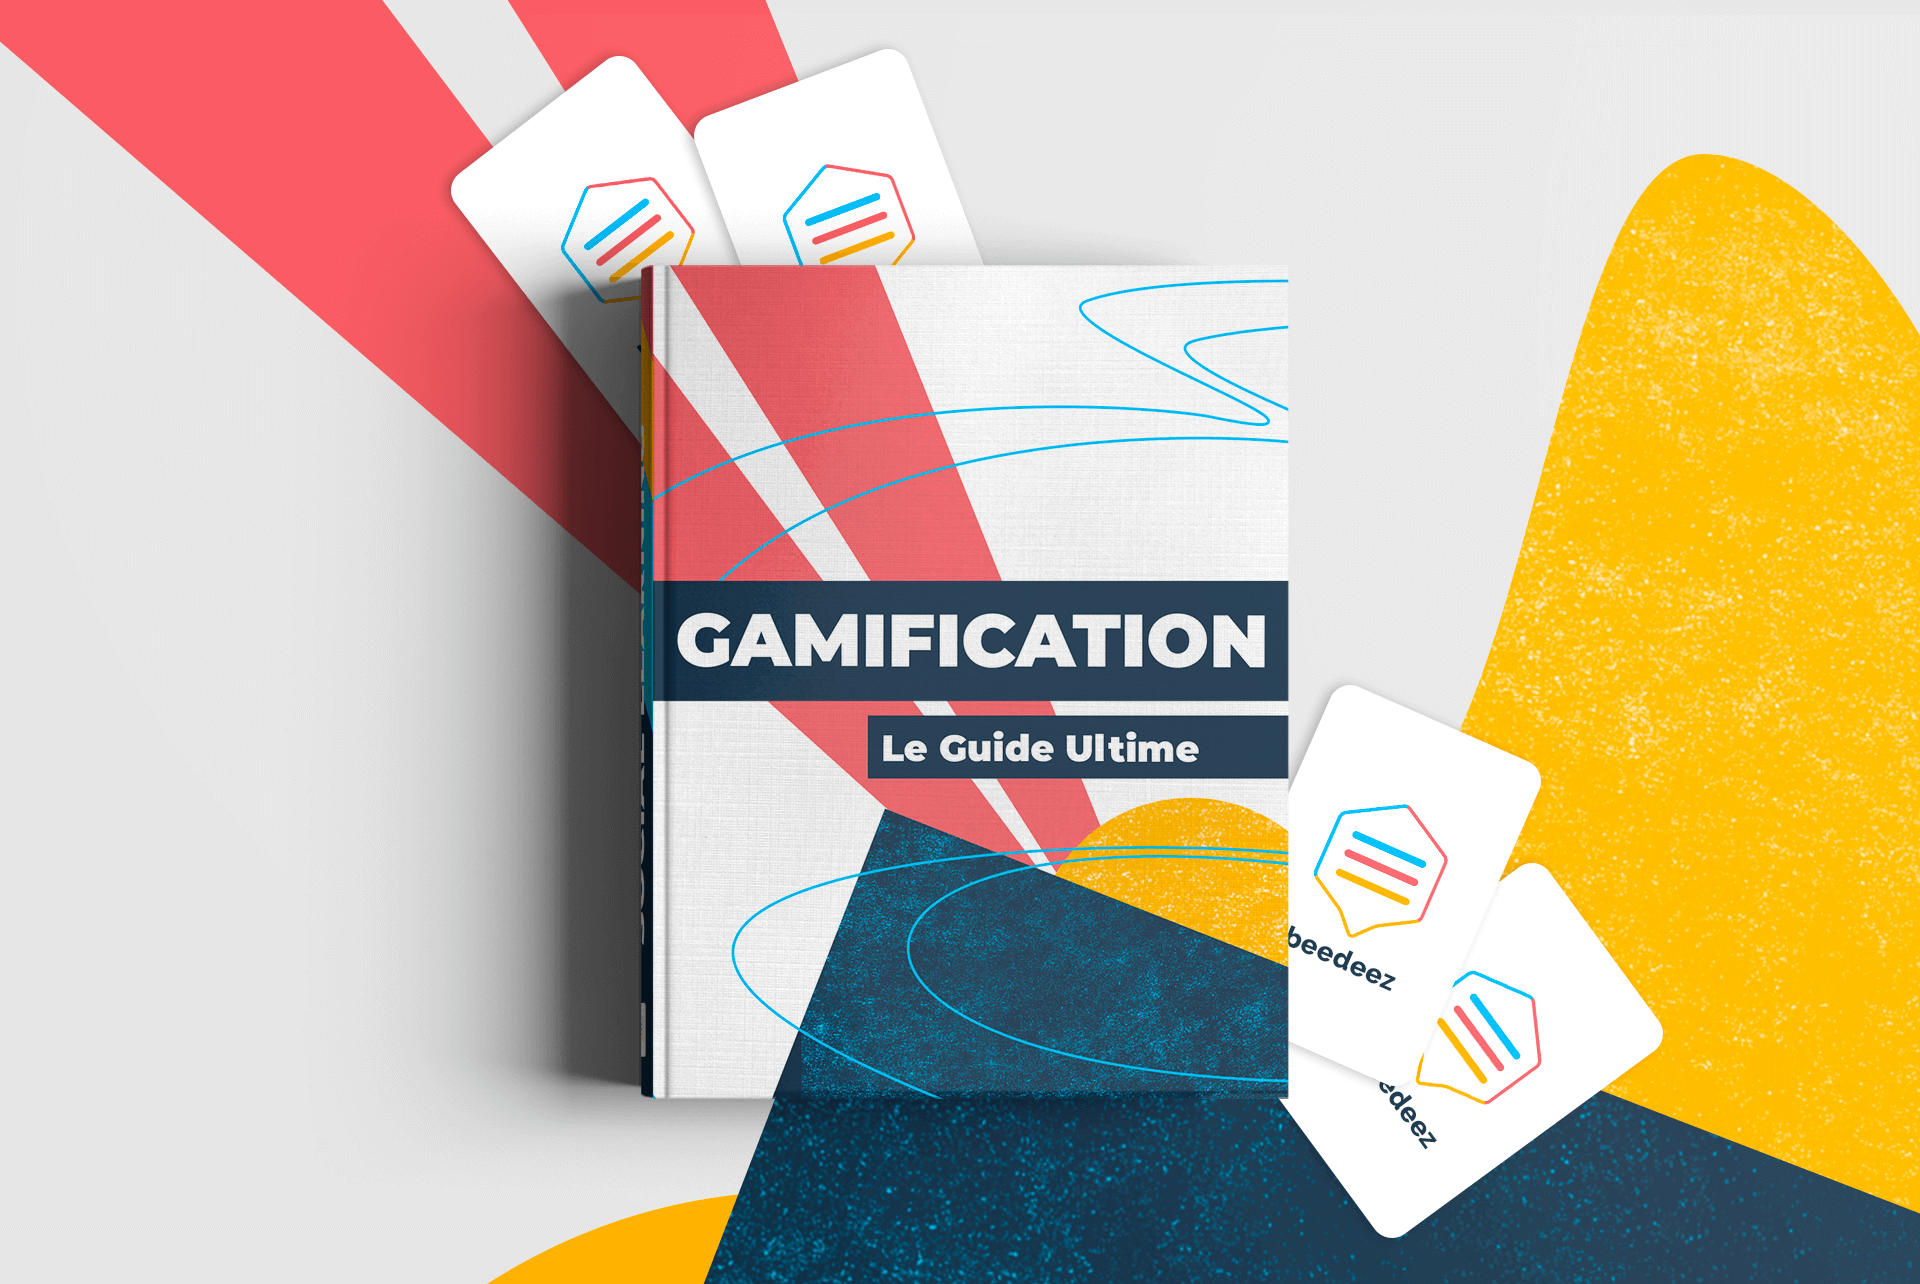 GAMIFICATION guide ultime